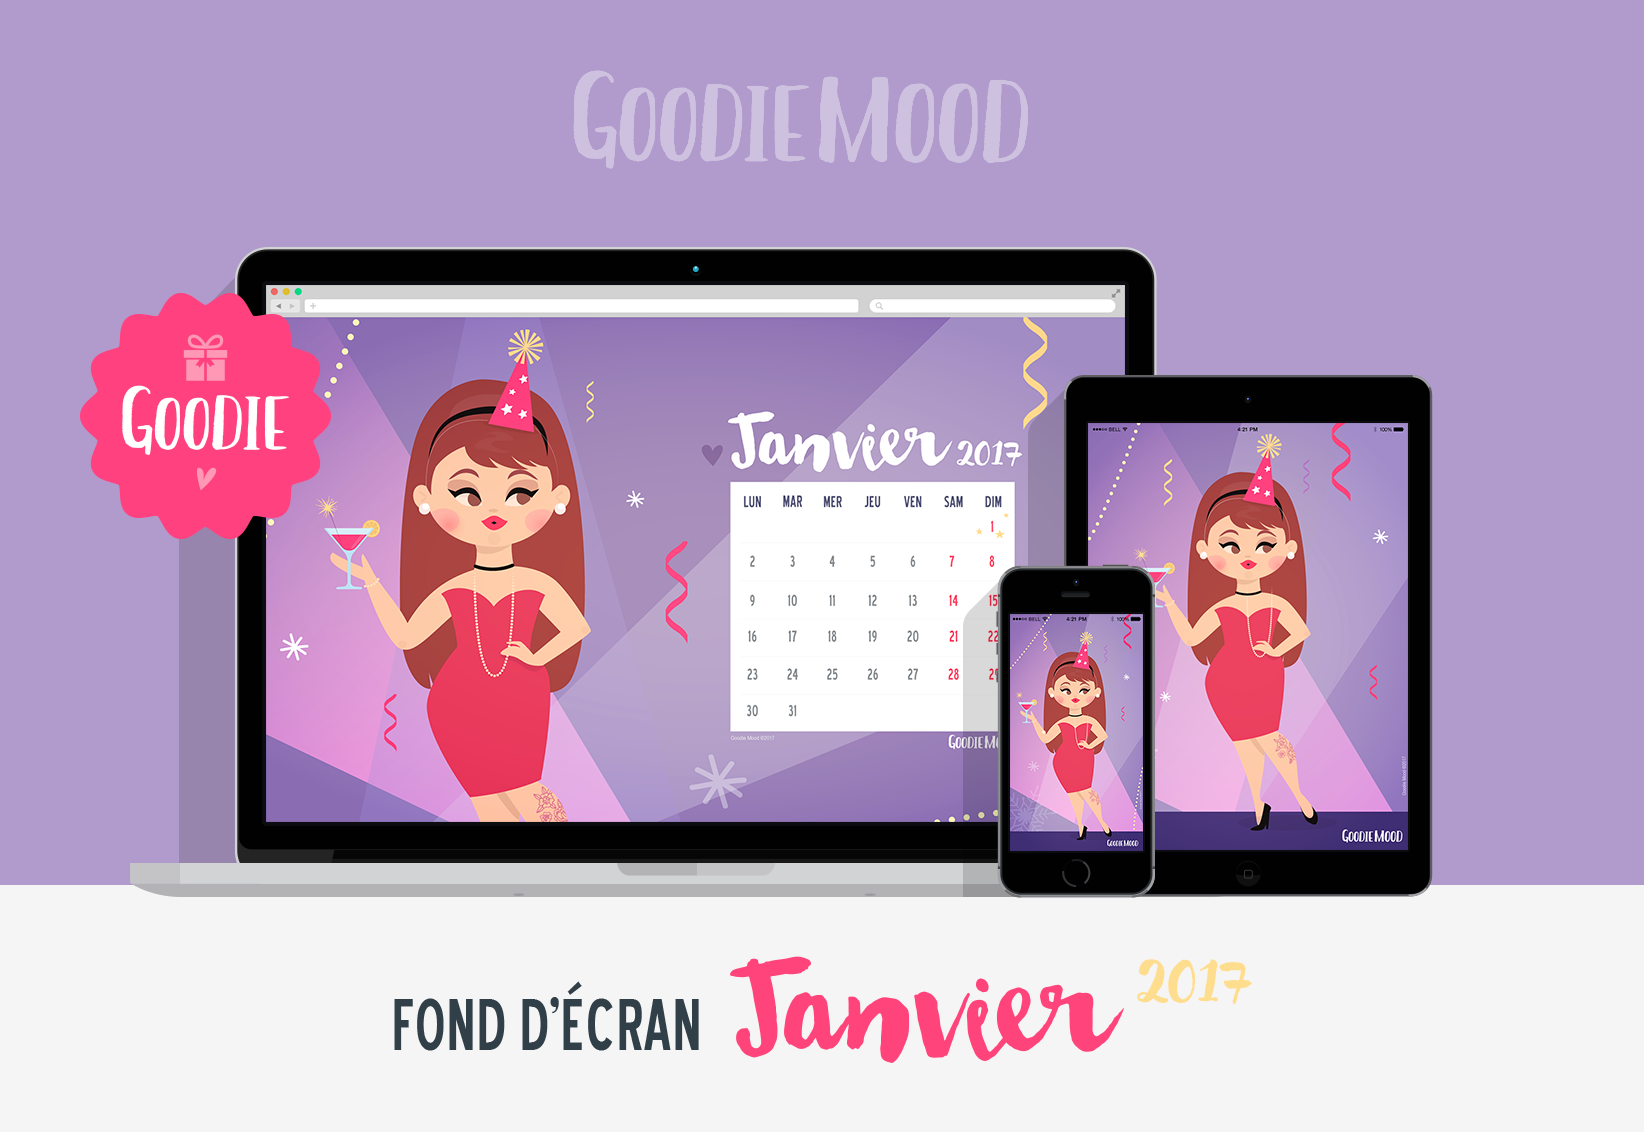 calendrier janvier 2017 illustration goodie mood